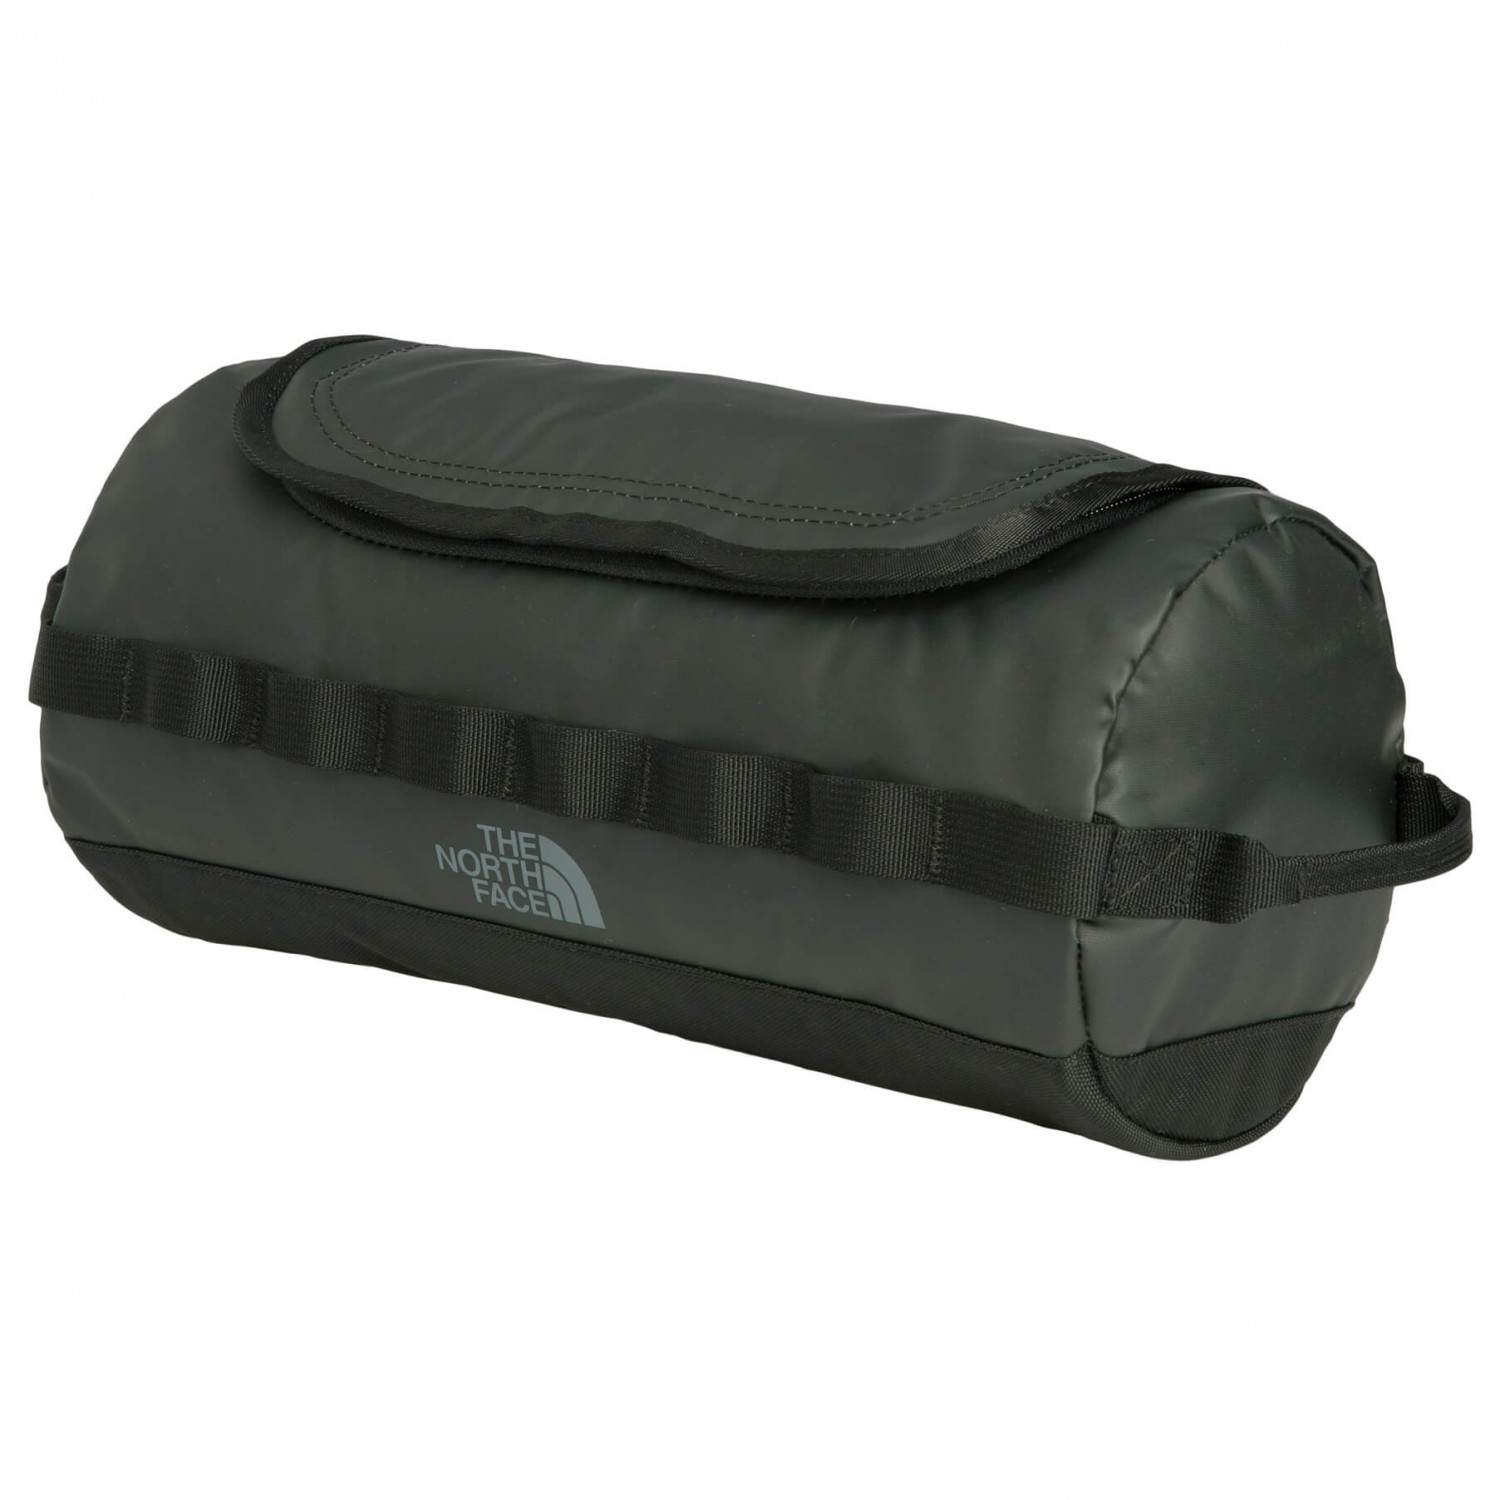 1f1847c9d95 The North Face Base Camp Travel Canister - Toiletries bag   Buy ...